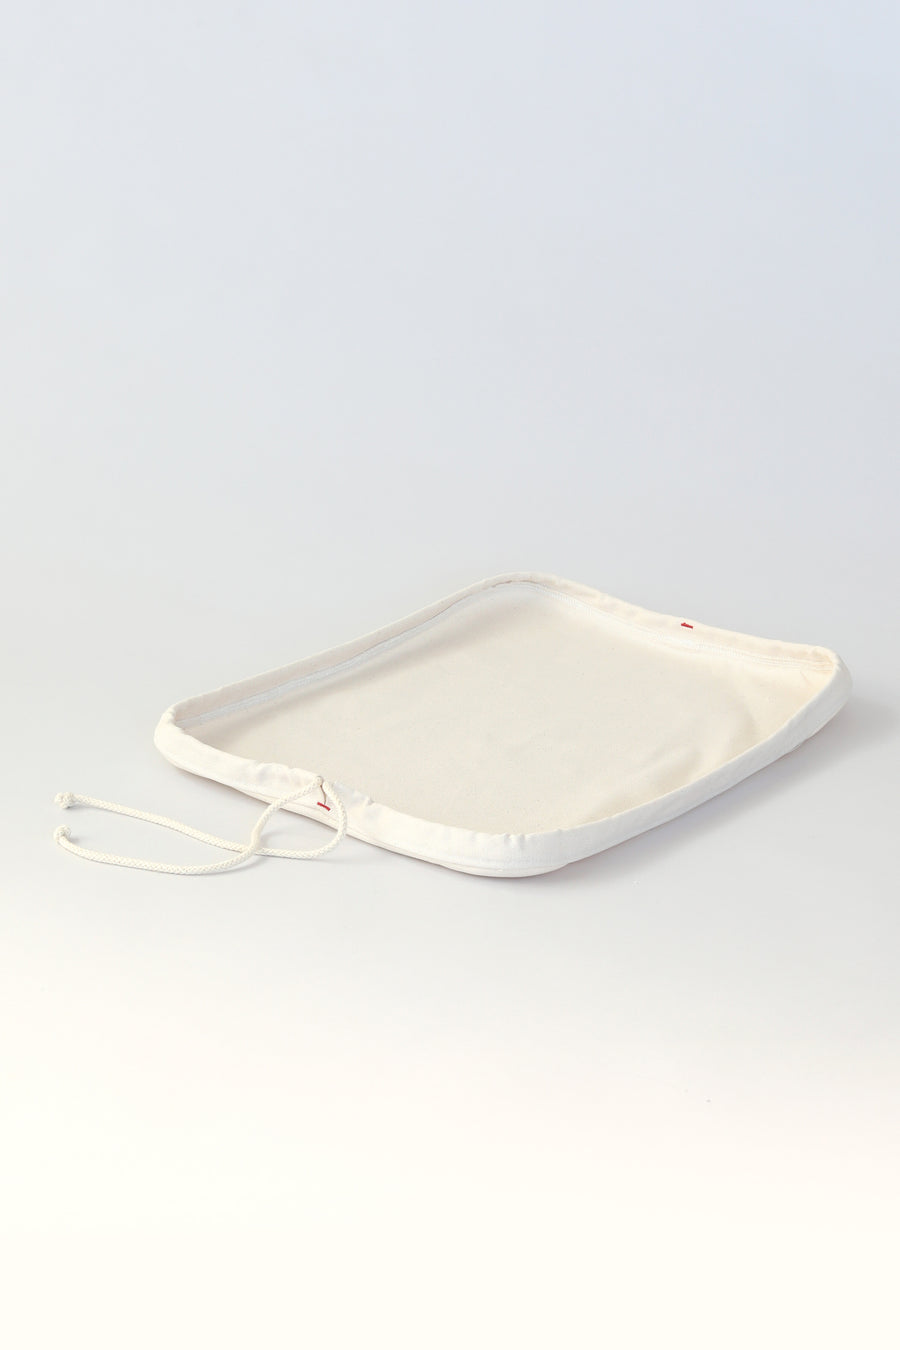 Couvre-Plat Large Pan Cover - Aplat